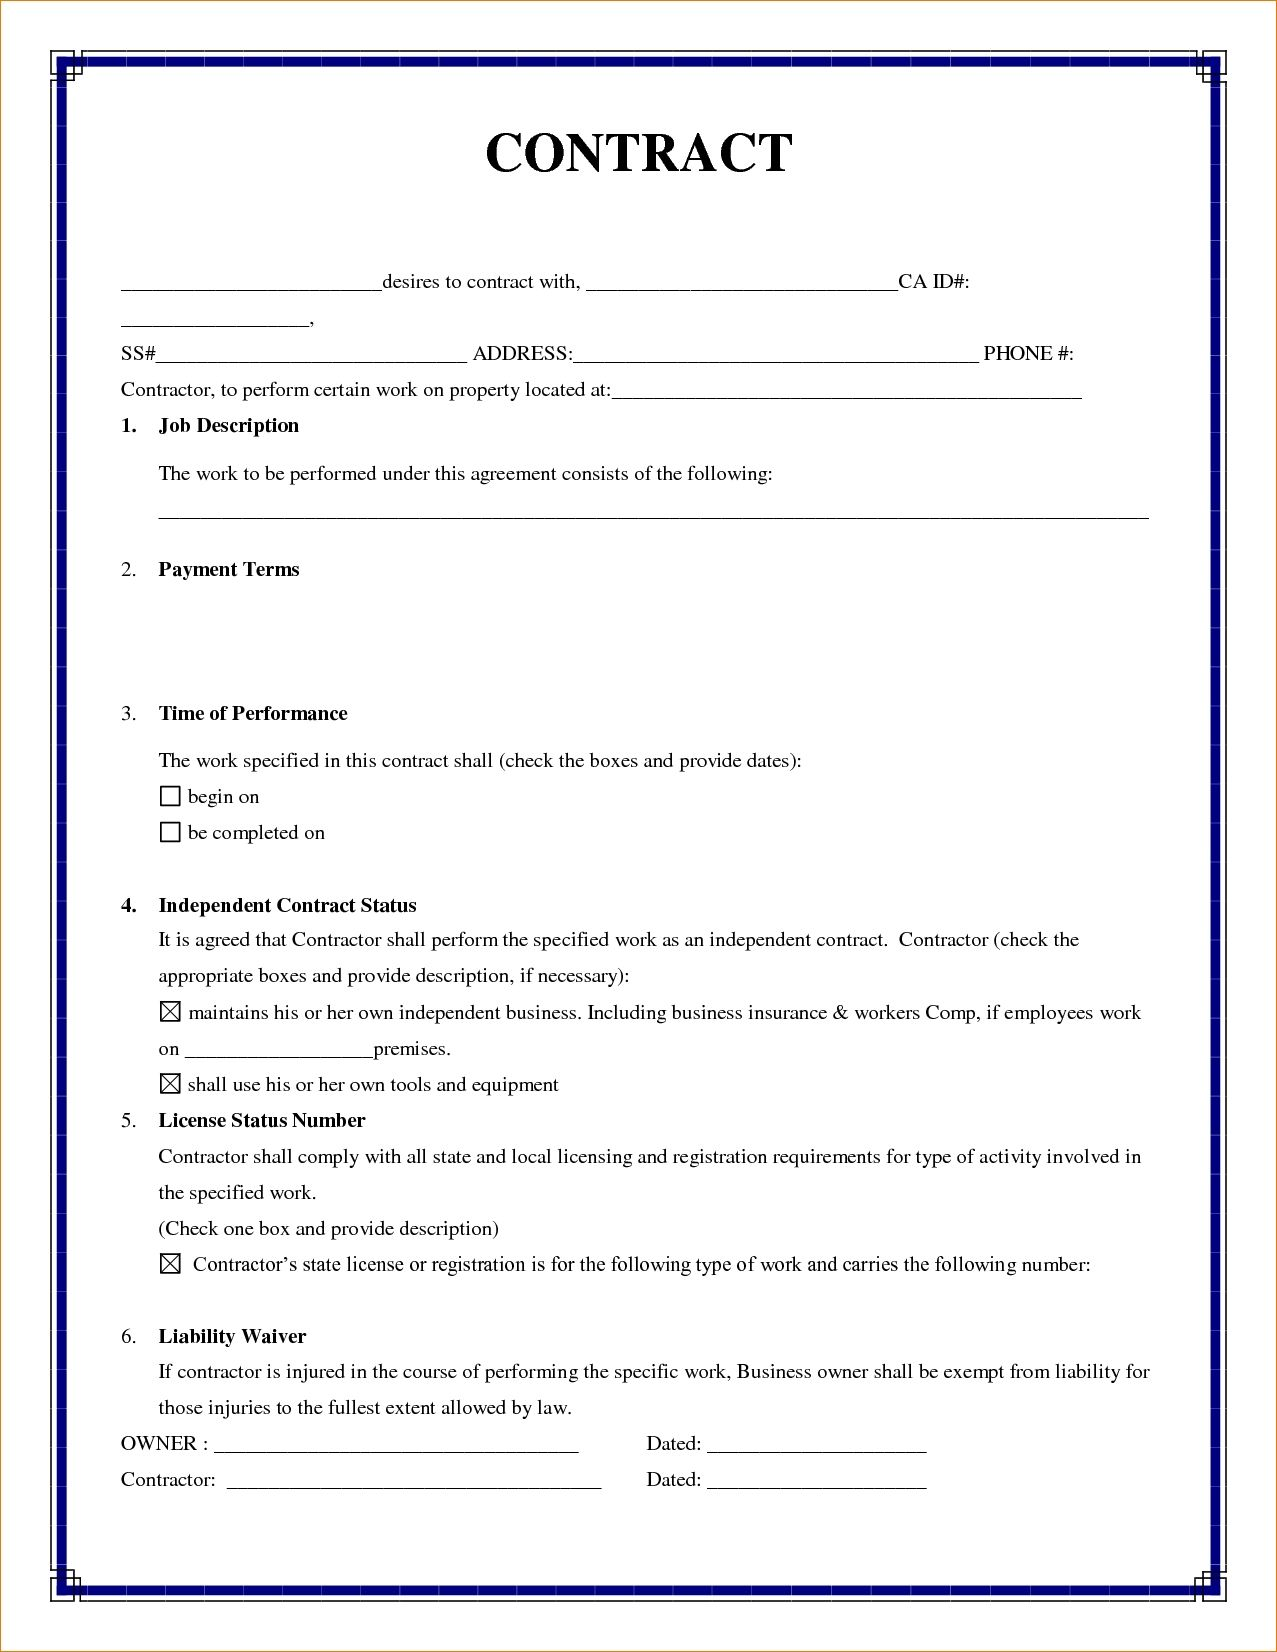 Simple Contract Agreement Contractor Contract Construction